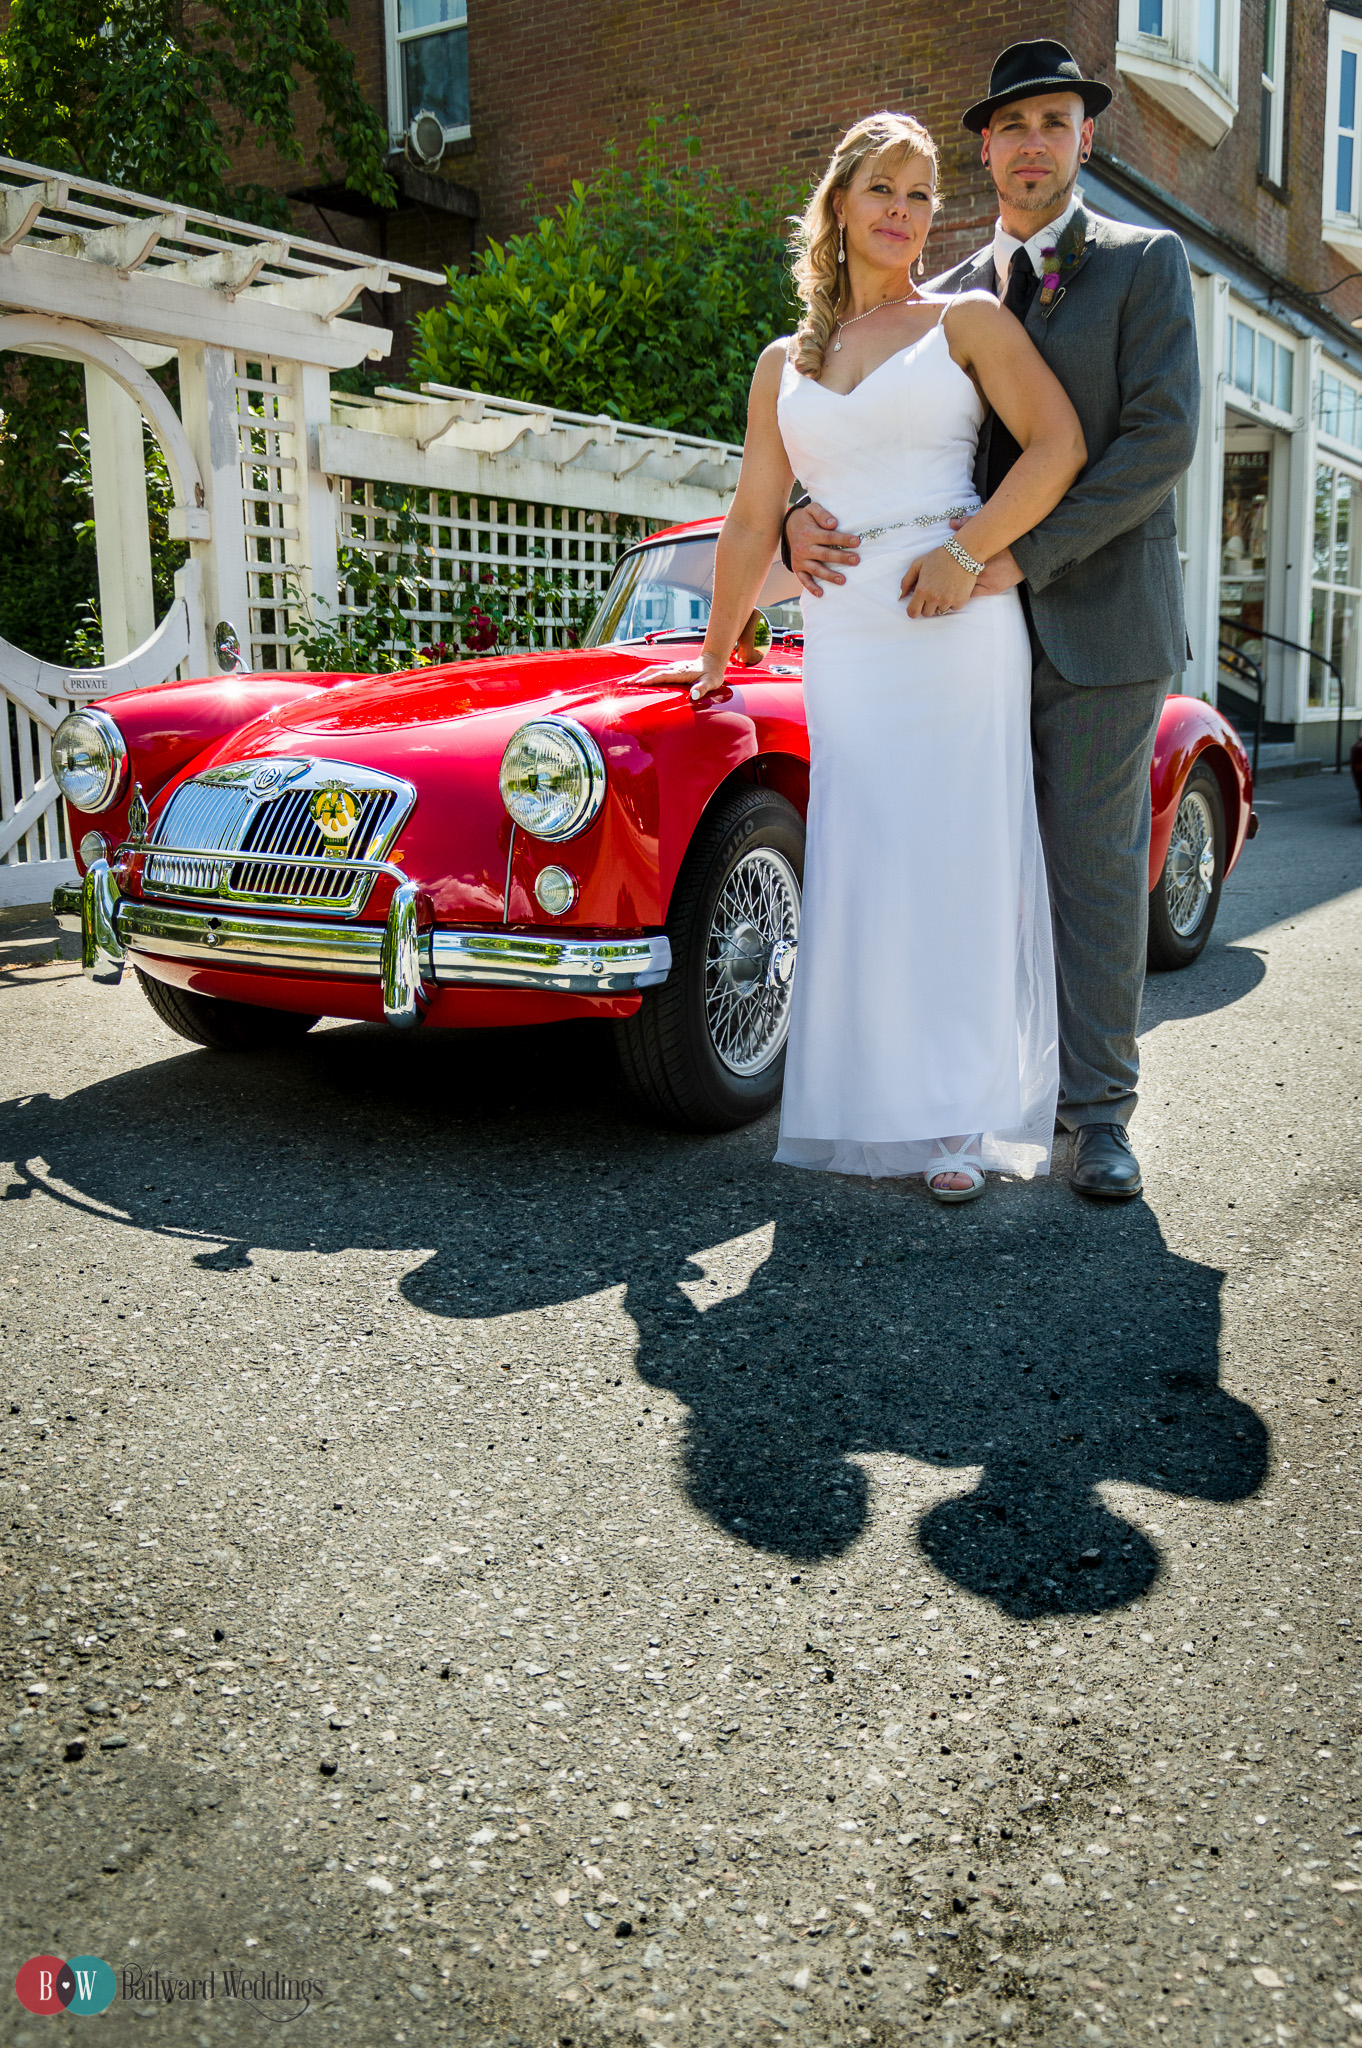 Bride and groom posing in front of classic car